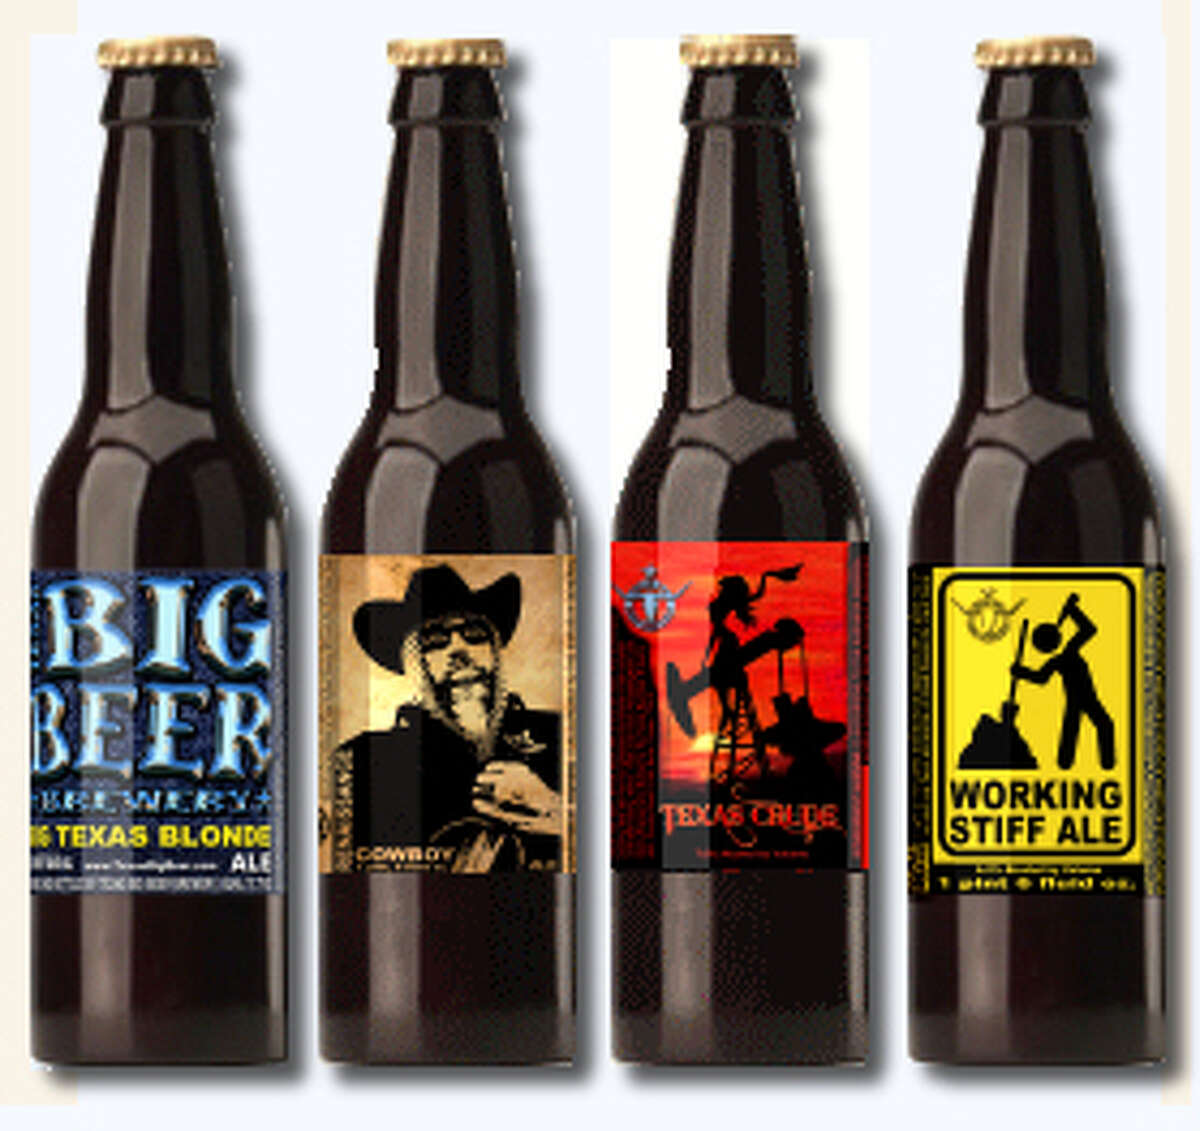 A selection of beers from John and Tammy McKissack's Texas Big Beer Brewery.